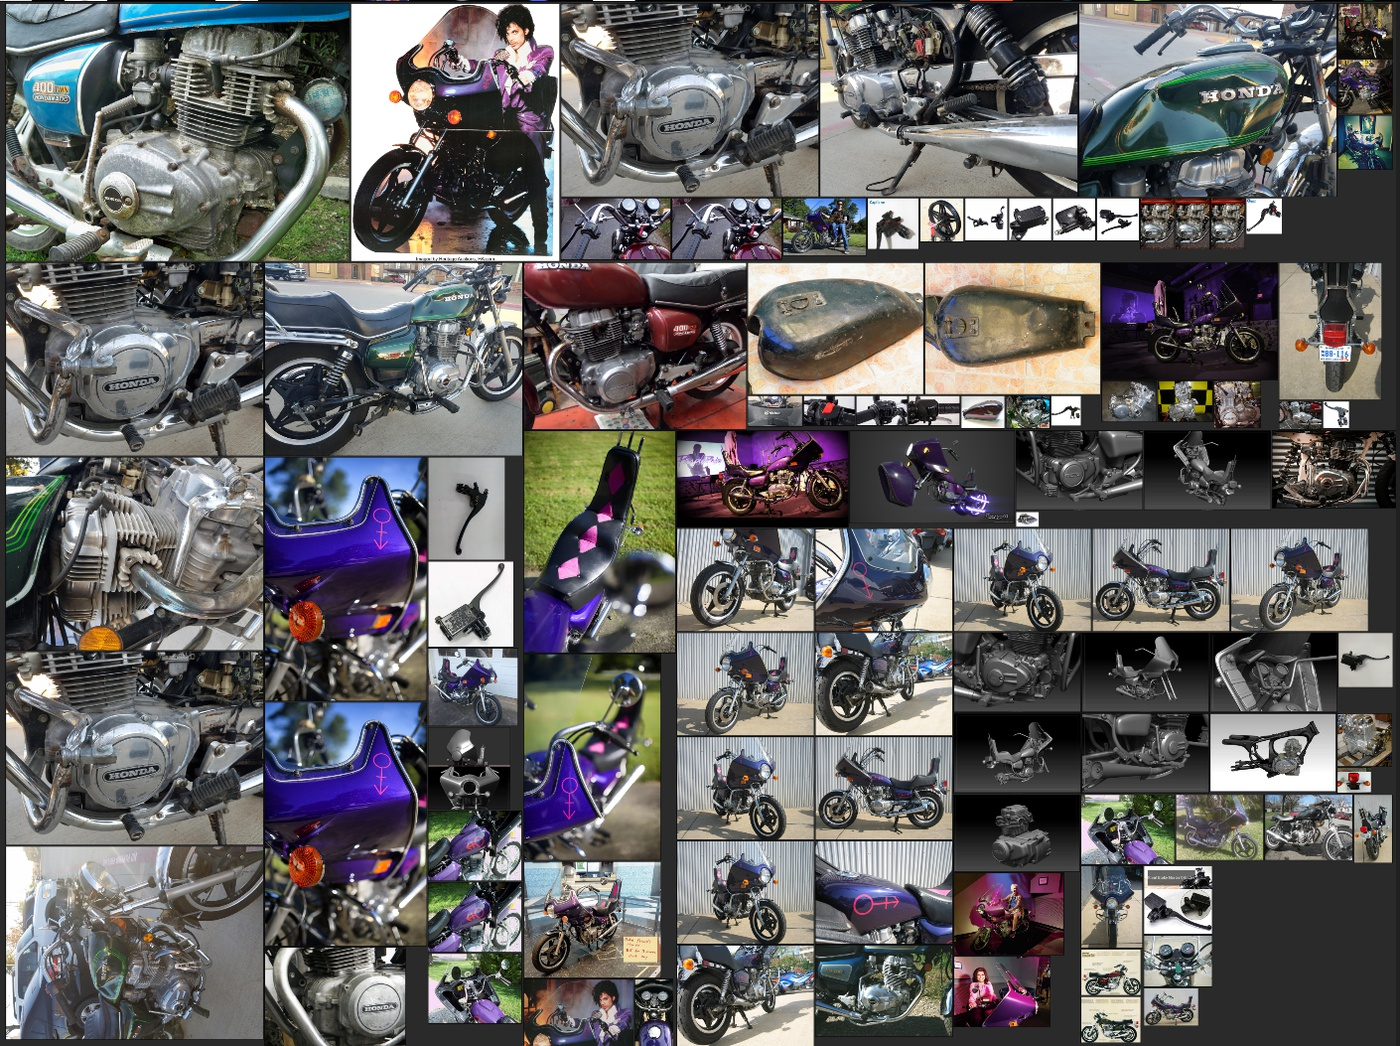 pureref research bike detailing references imagery